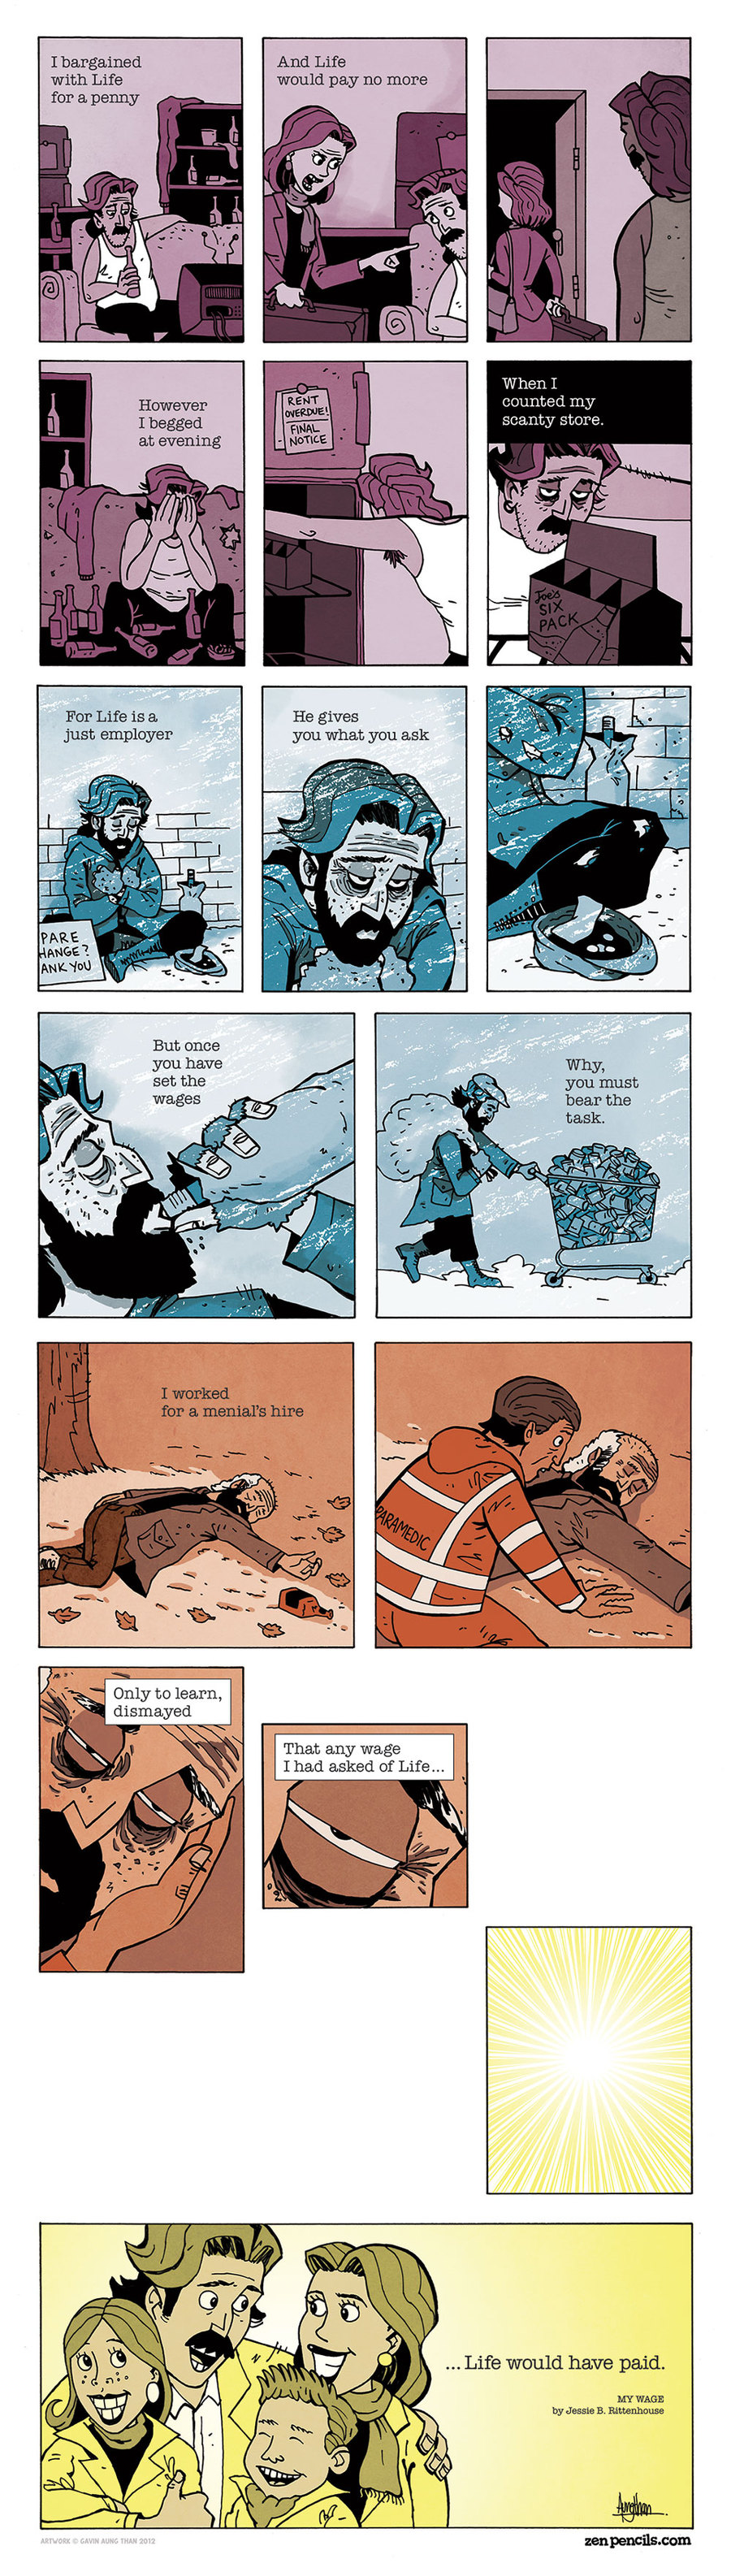 Zen Pencils for Dec 16, 2013 Comic Strip